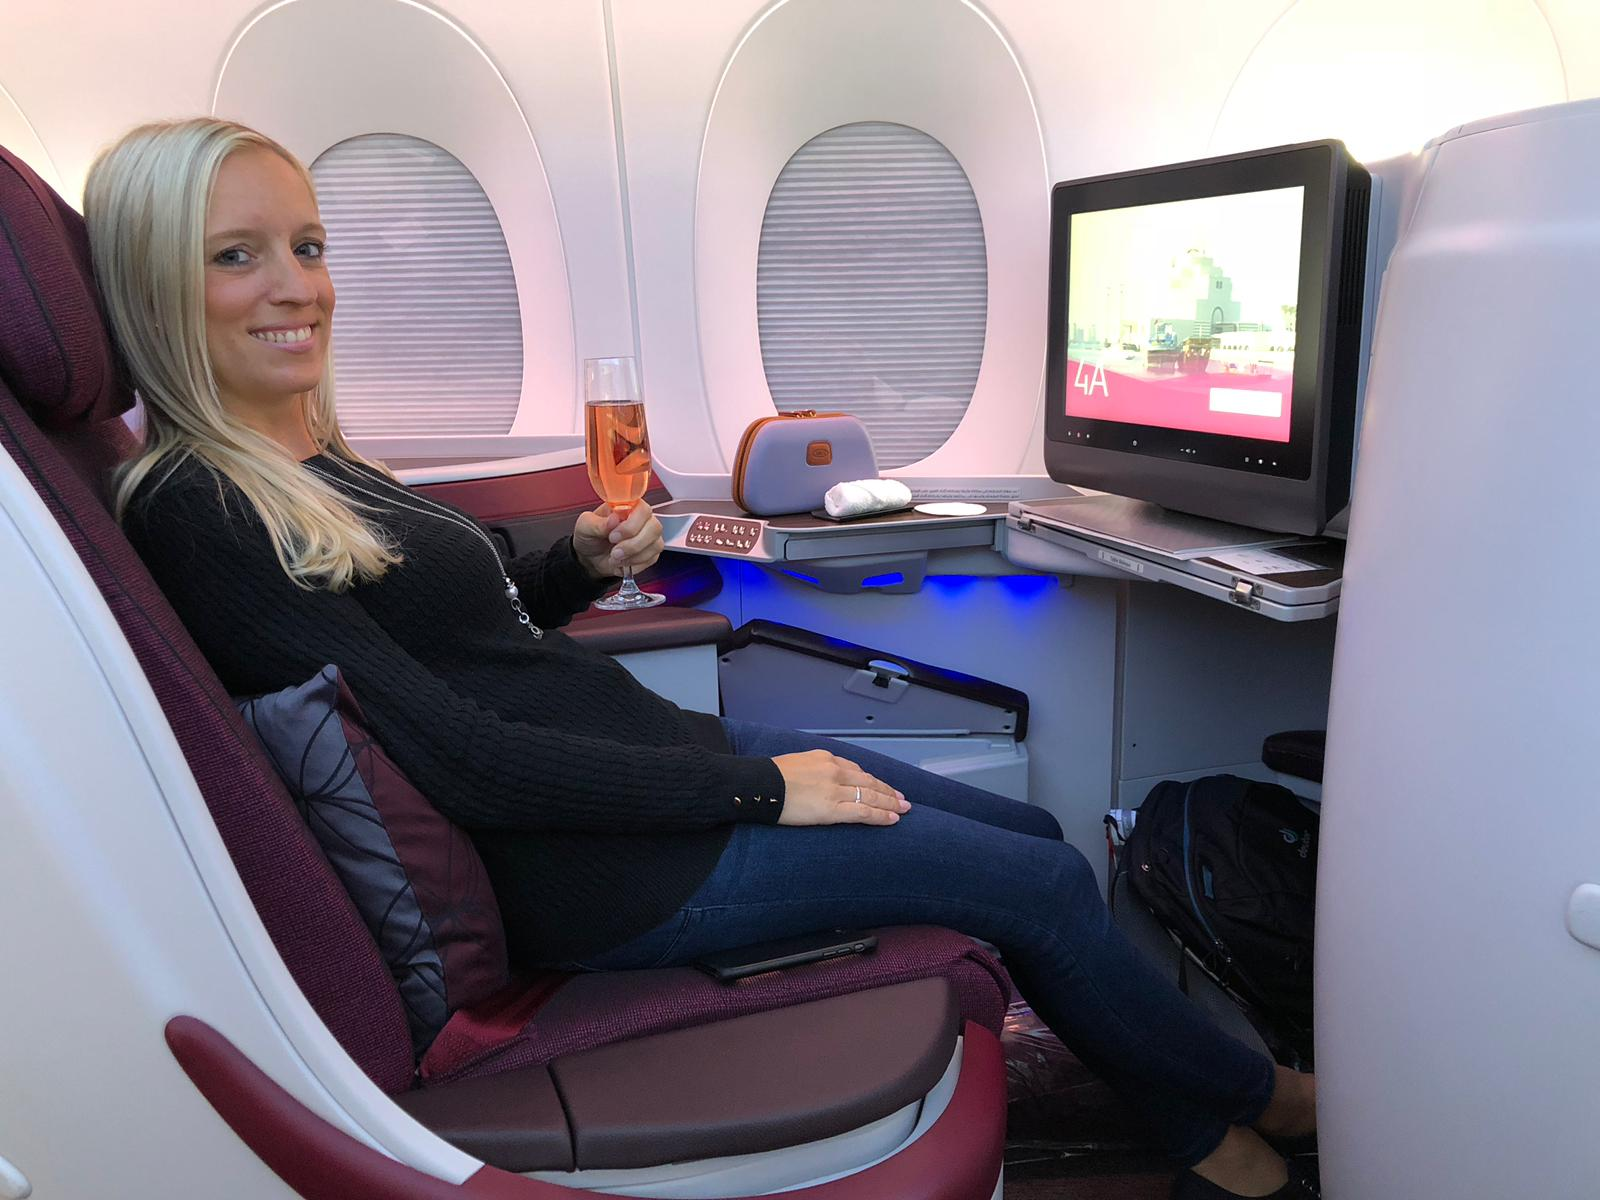 American Express Gold Card, Frau mit Sekt in der Hand sitzt in Business Class